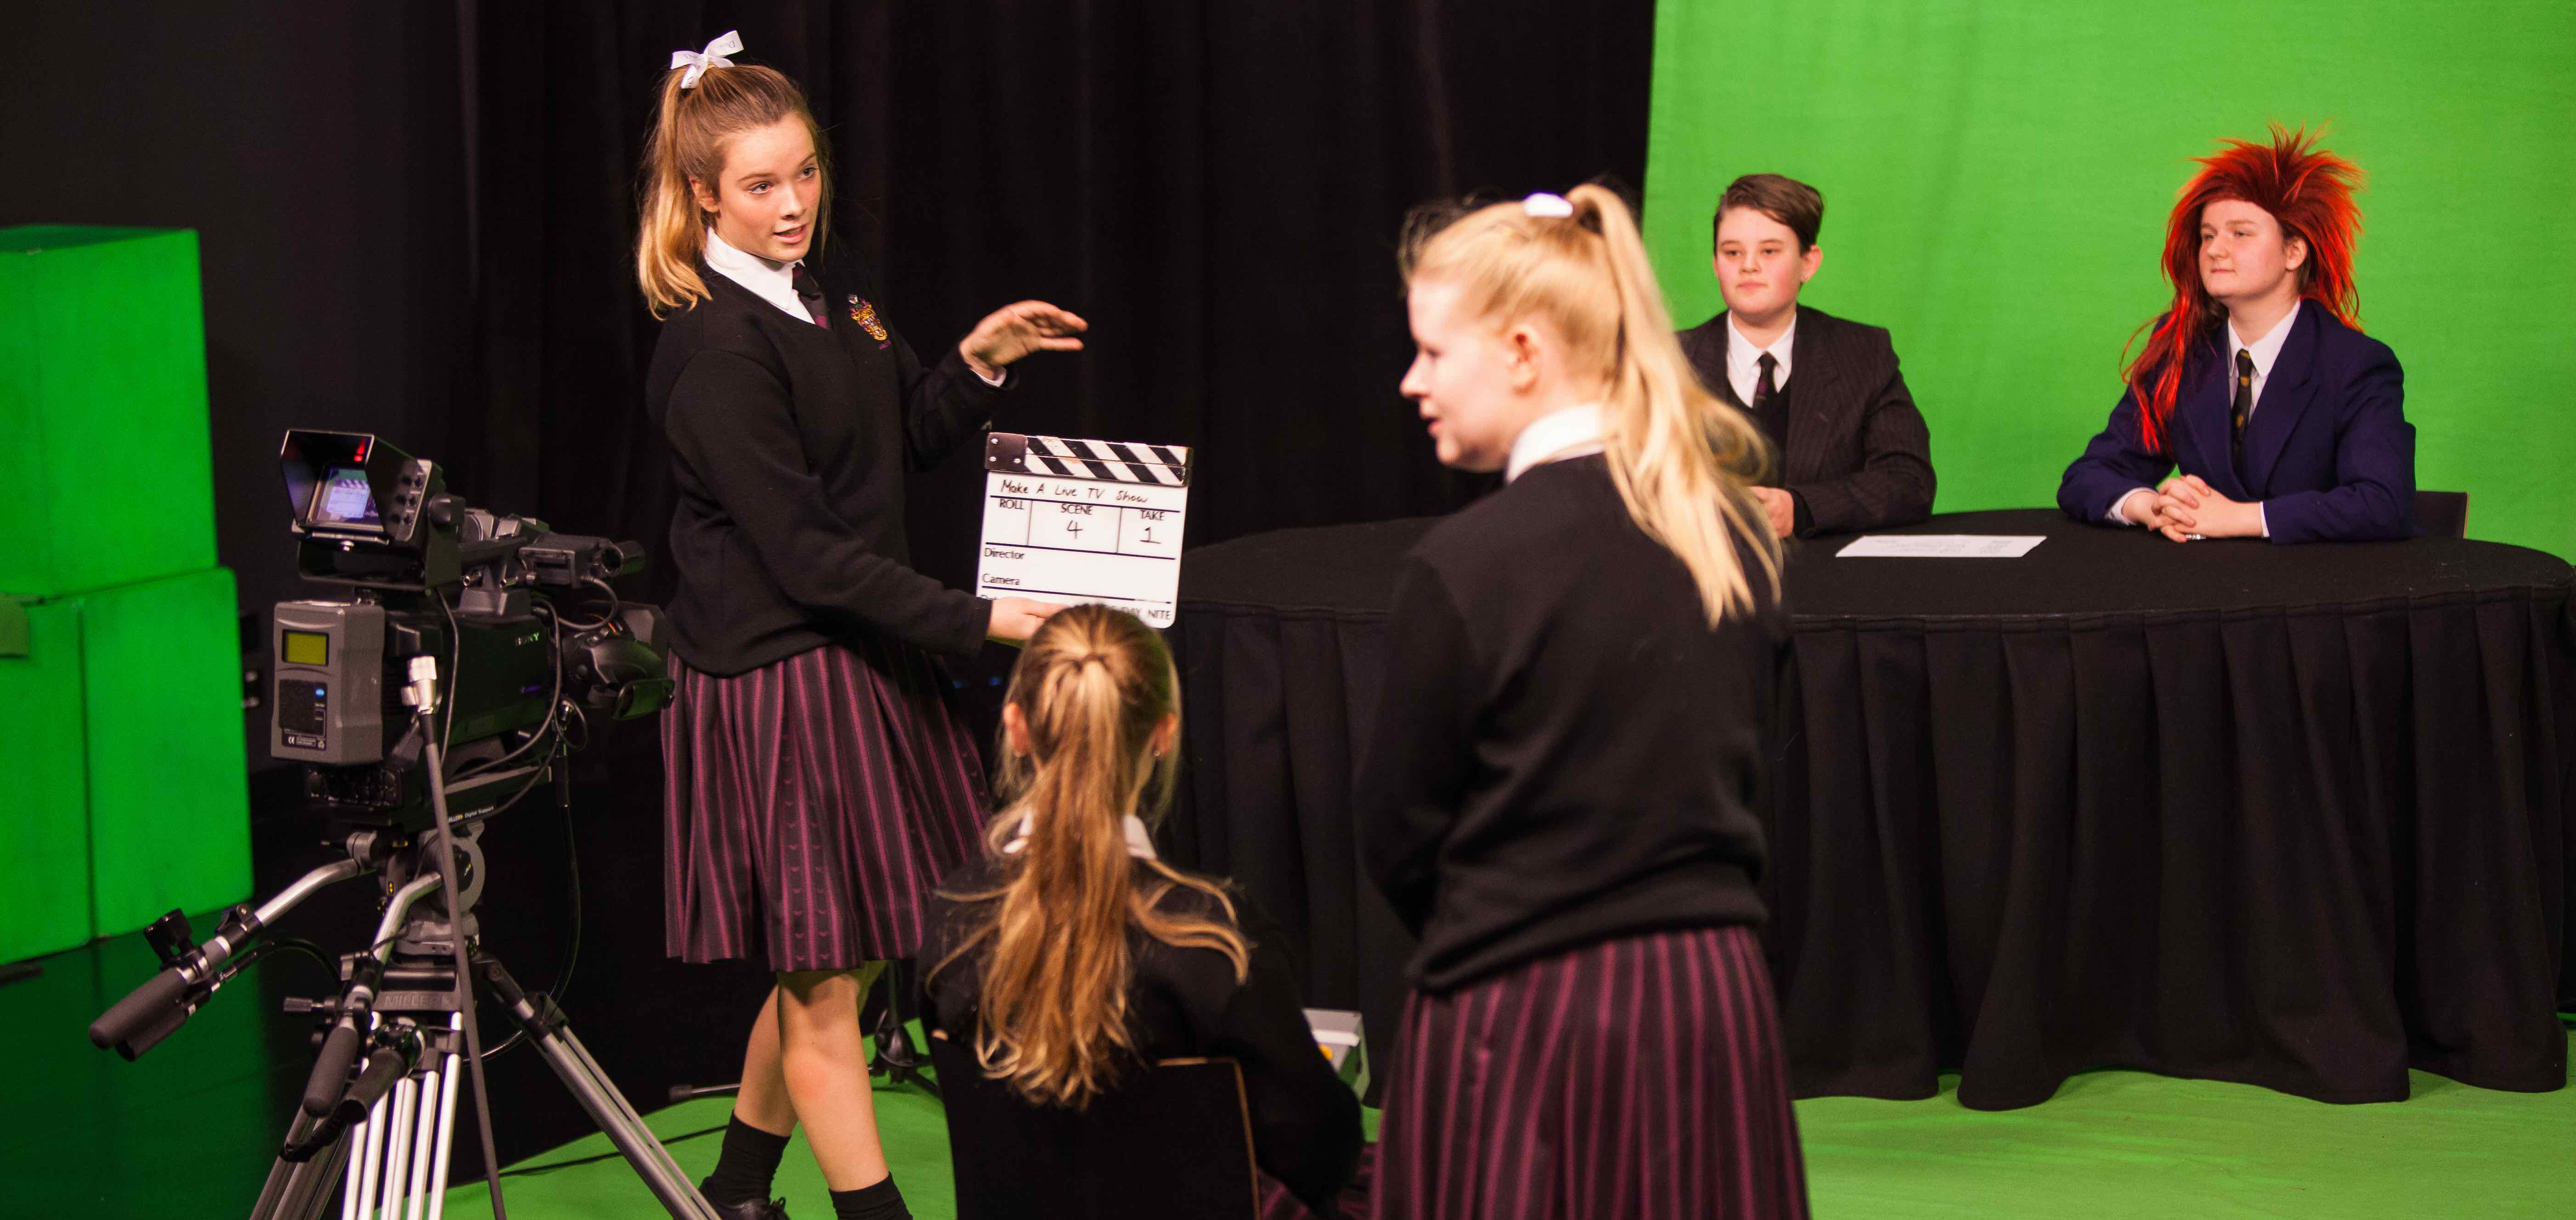 Year 9 students on green screen credit Mark Gambino